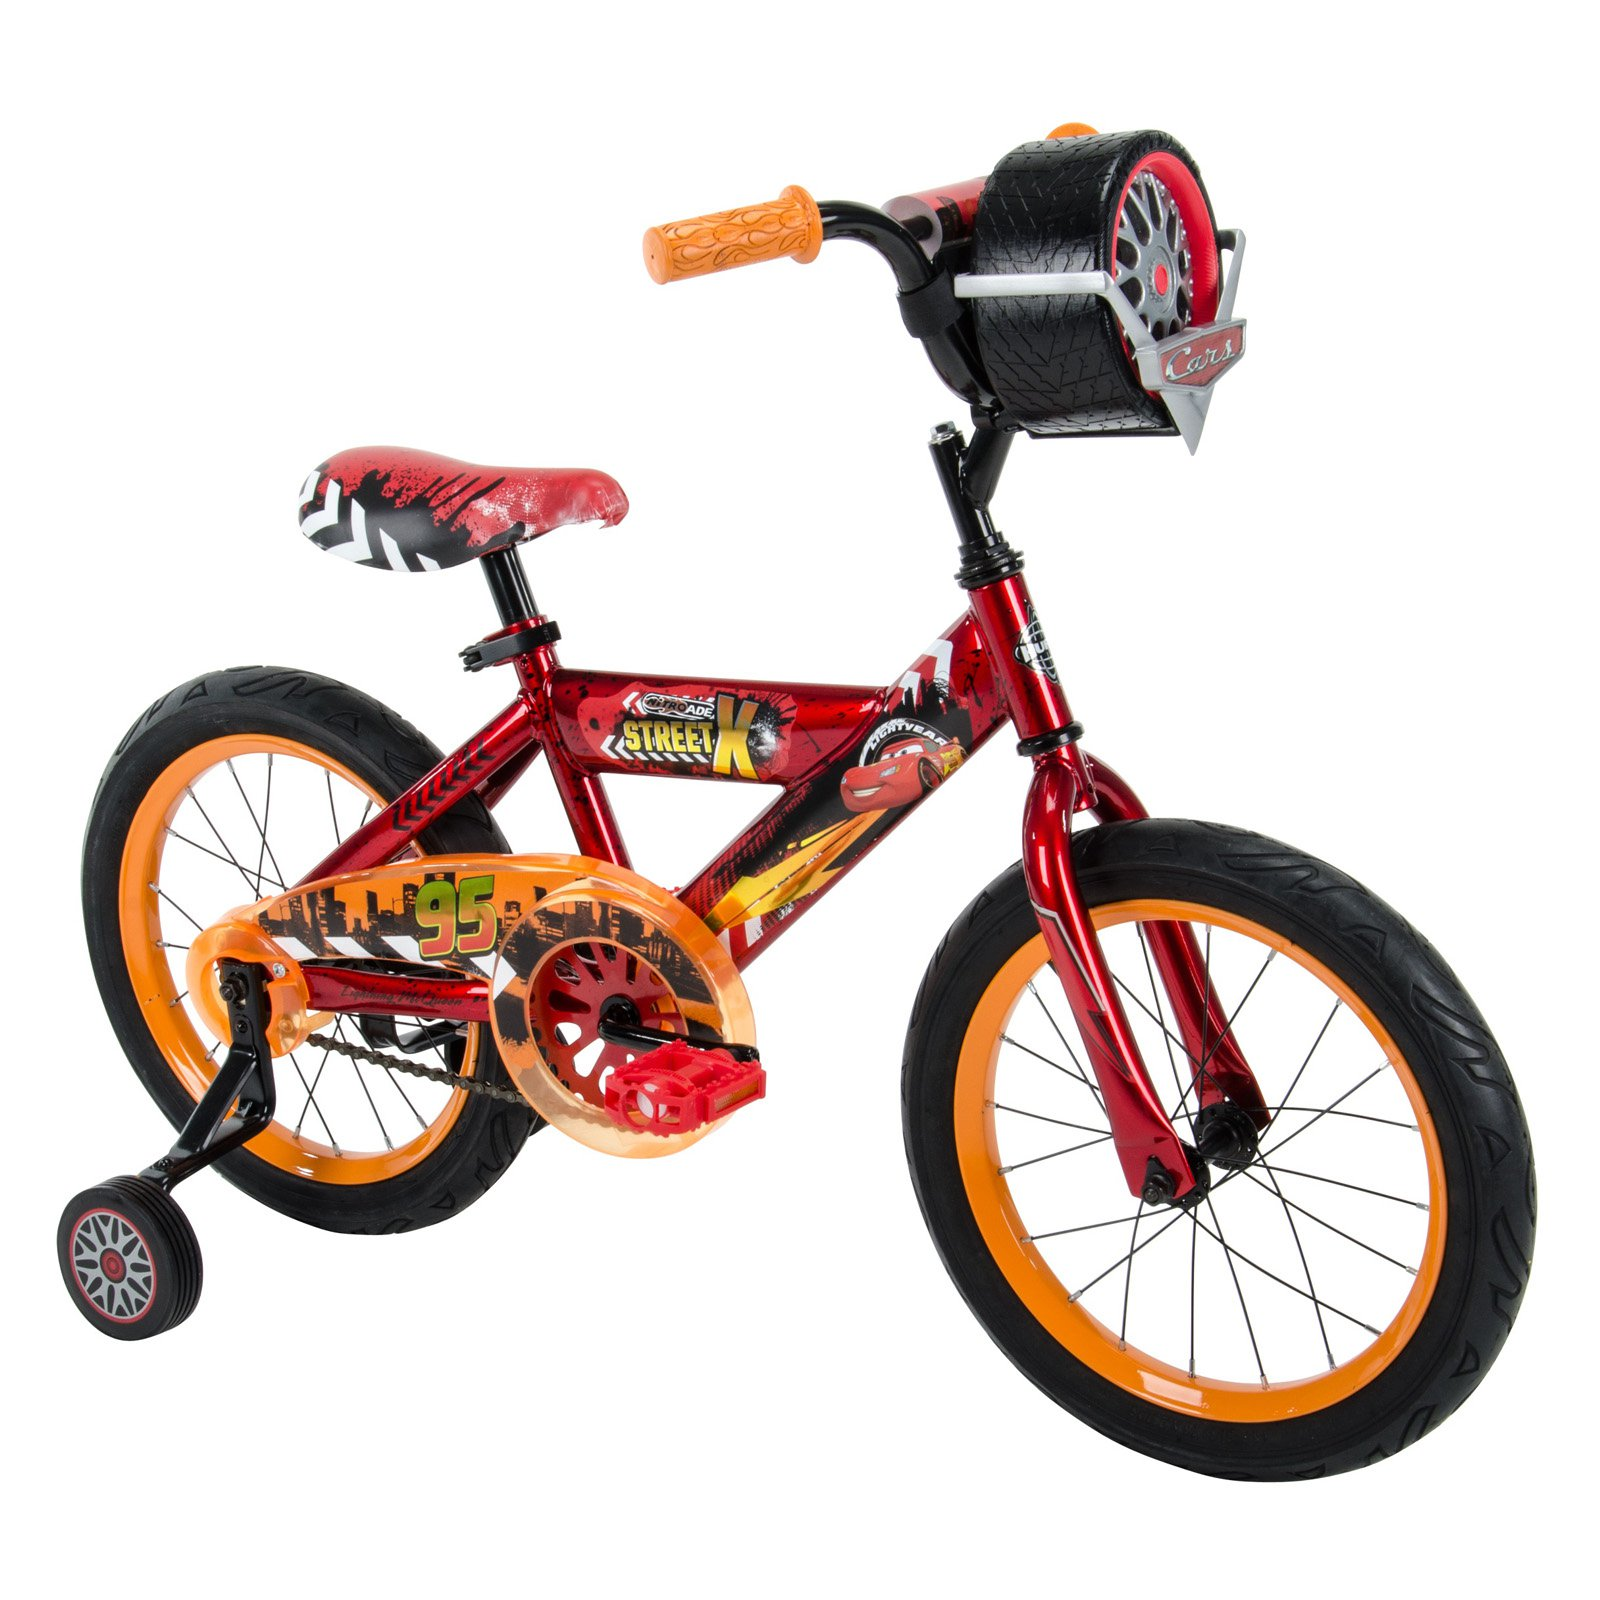 Huffy 16 in. Disney Cars 3 Bike with Race-Ready Tire Case by